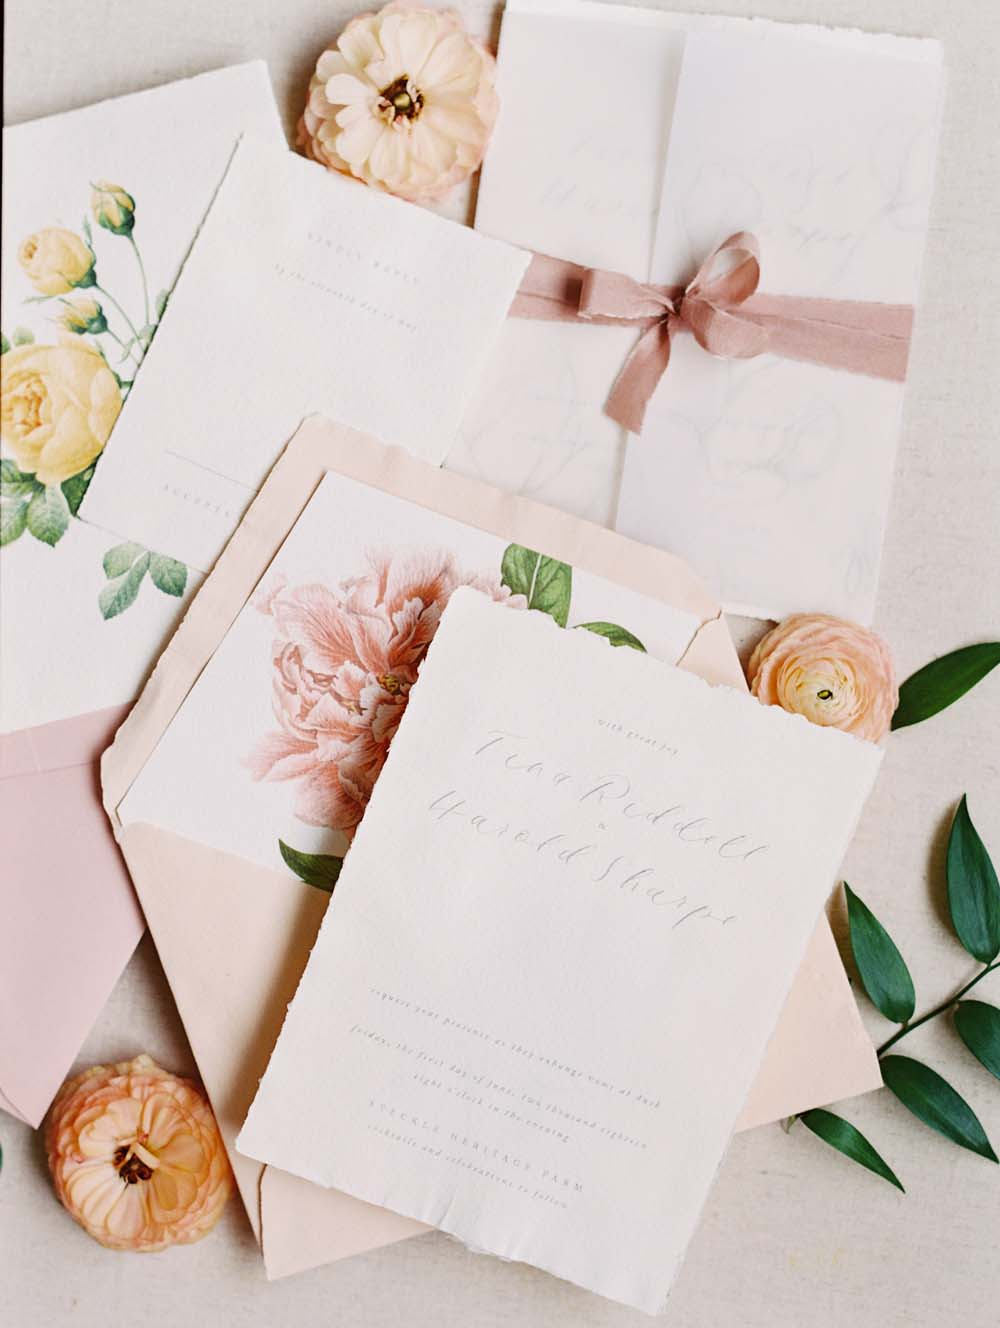 A Quirky Non-Traditional Wedding in Kitchener, Ontario - The invitations